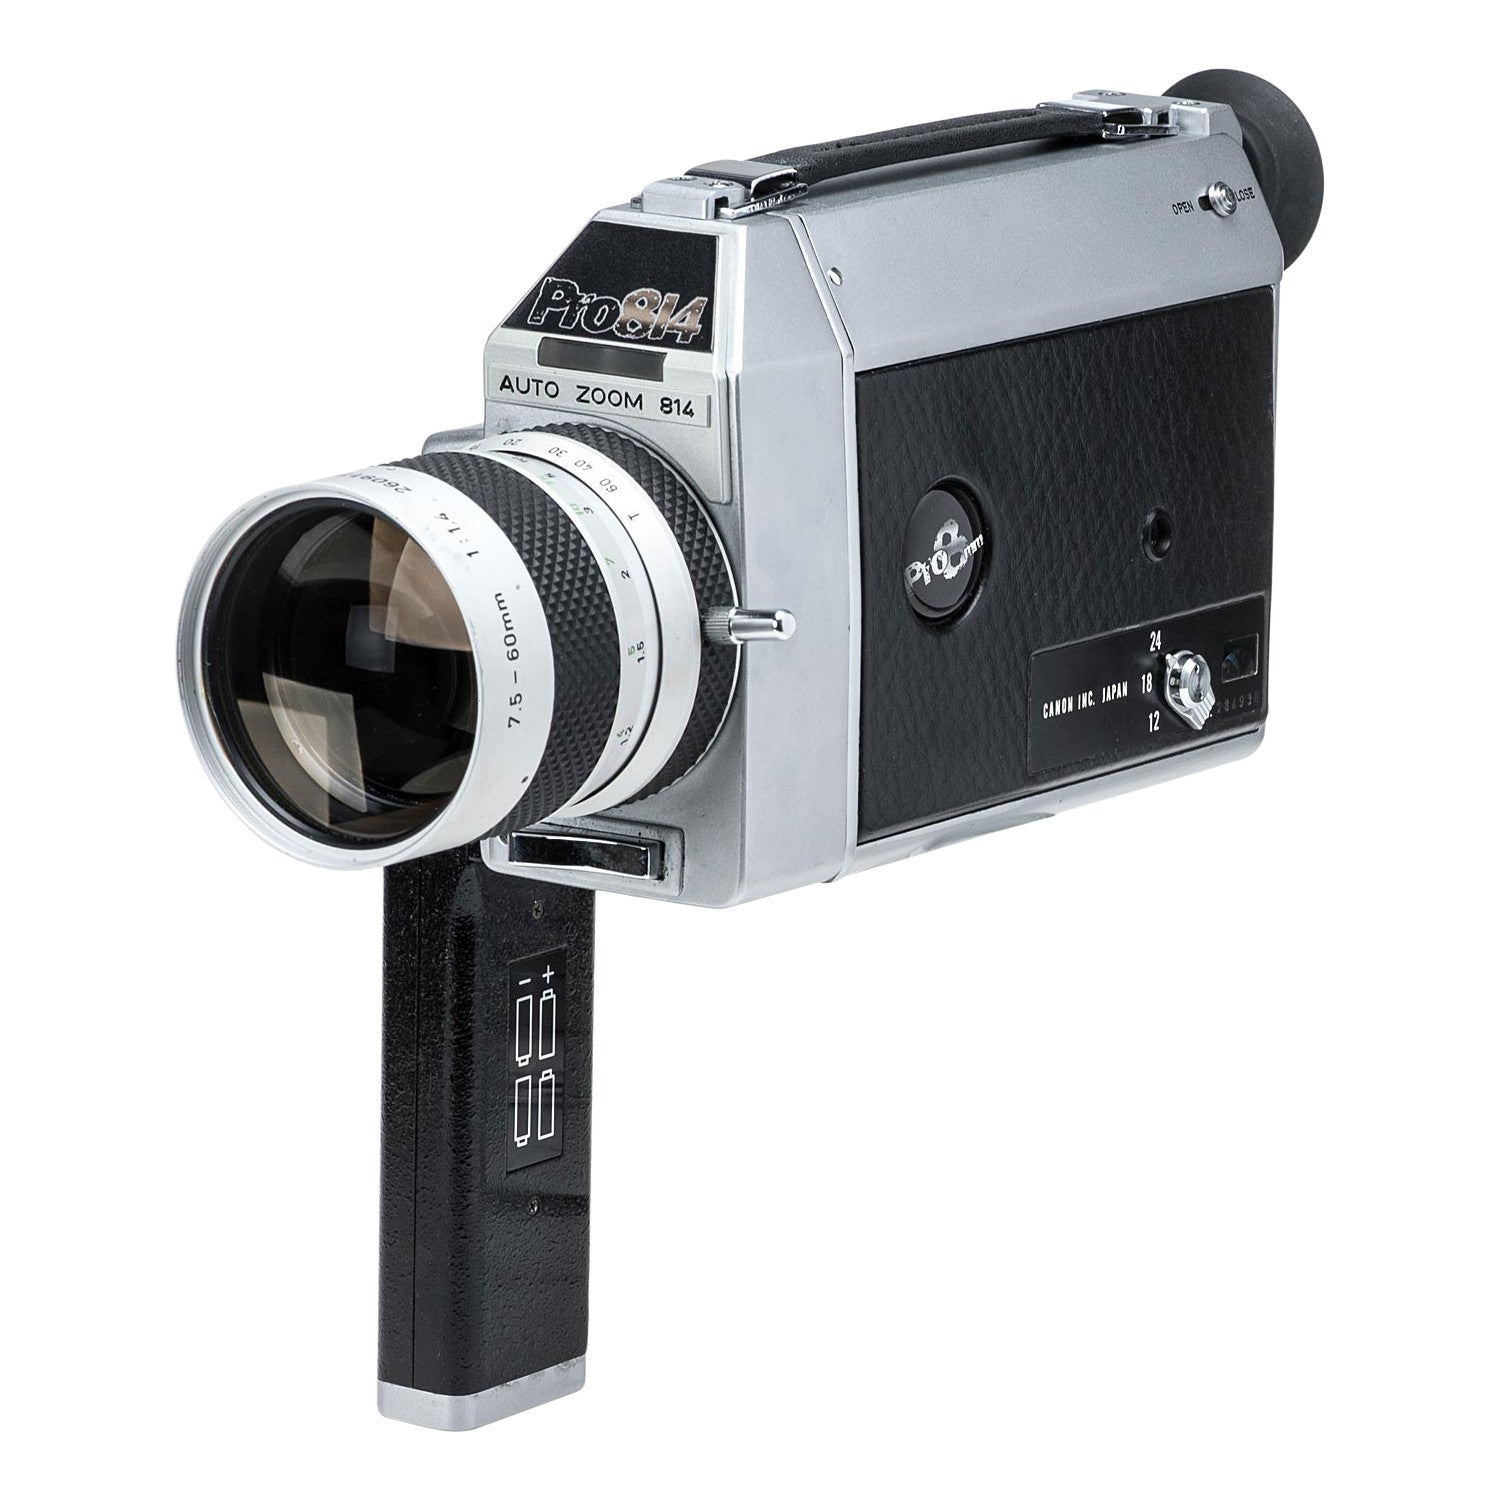 Pro814 super 8 camera pro8mm for Camera email